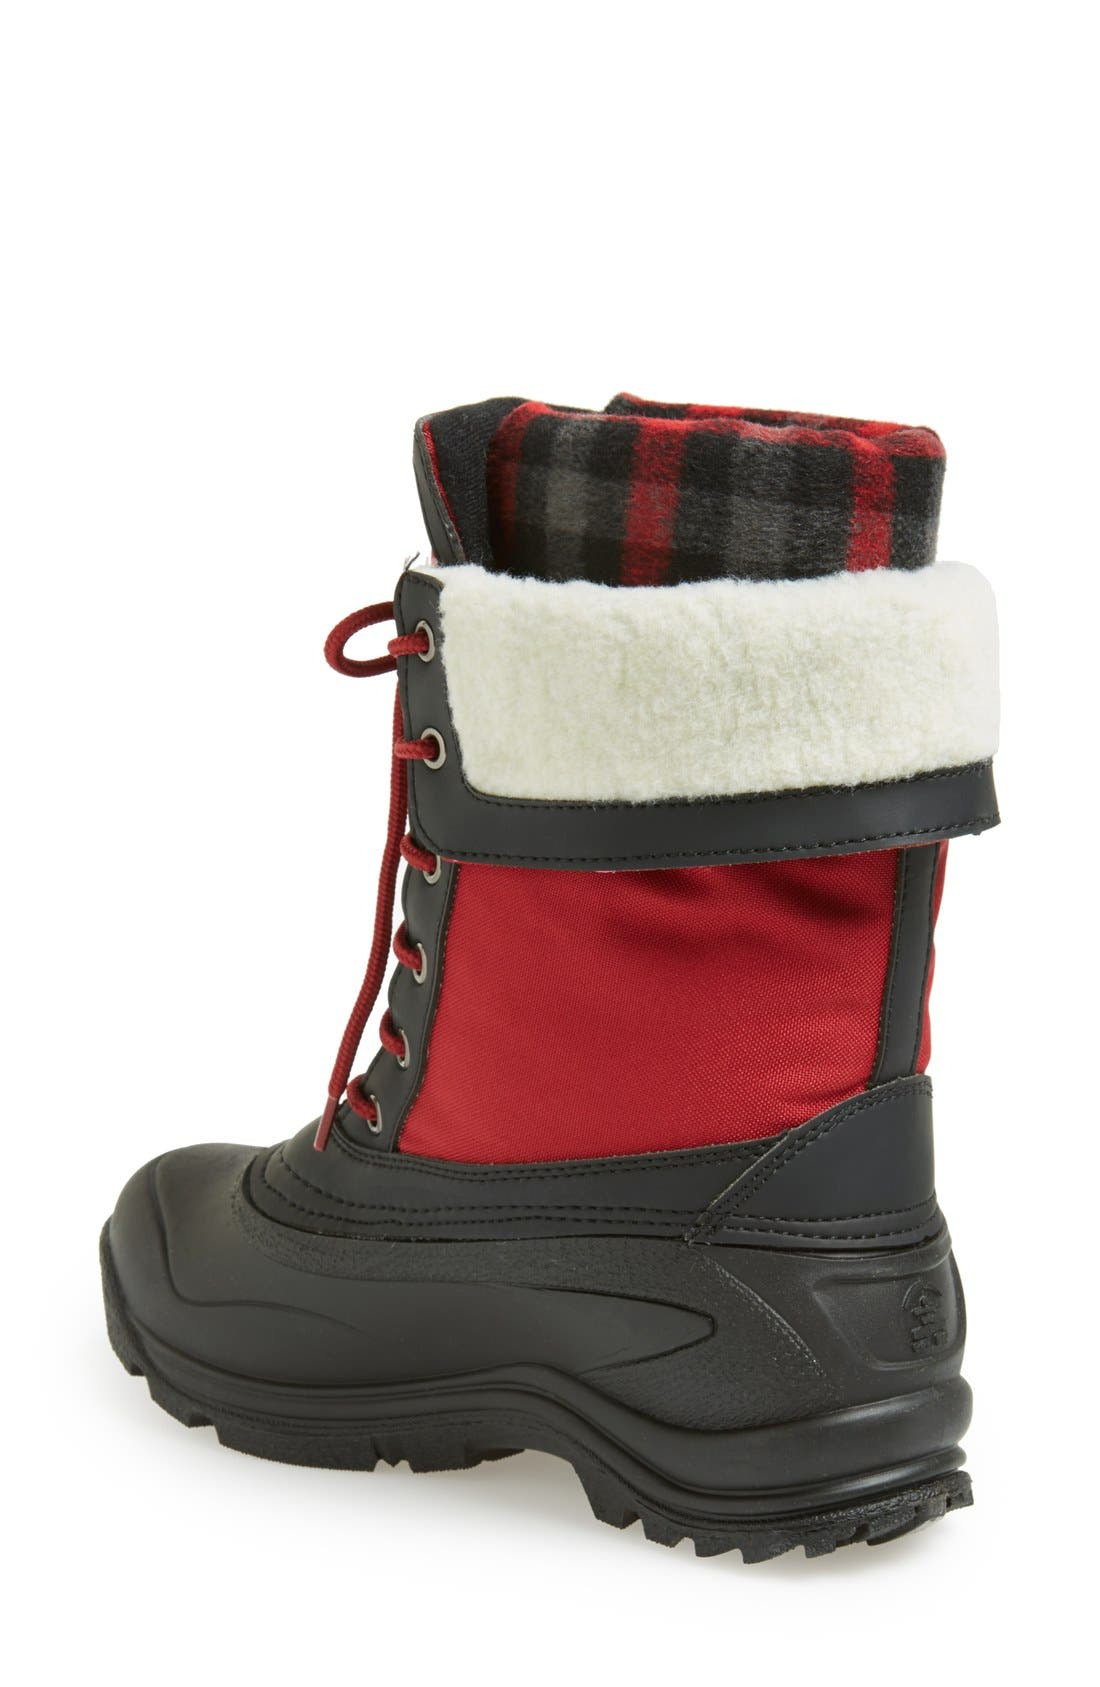 Alternate Image 2  - Kamik 'Sugarloaf' Waterproof Boot (Women)